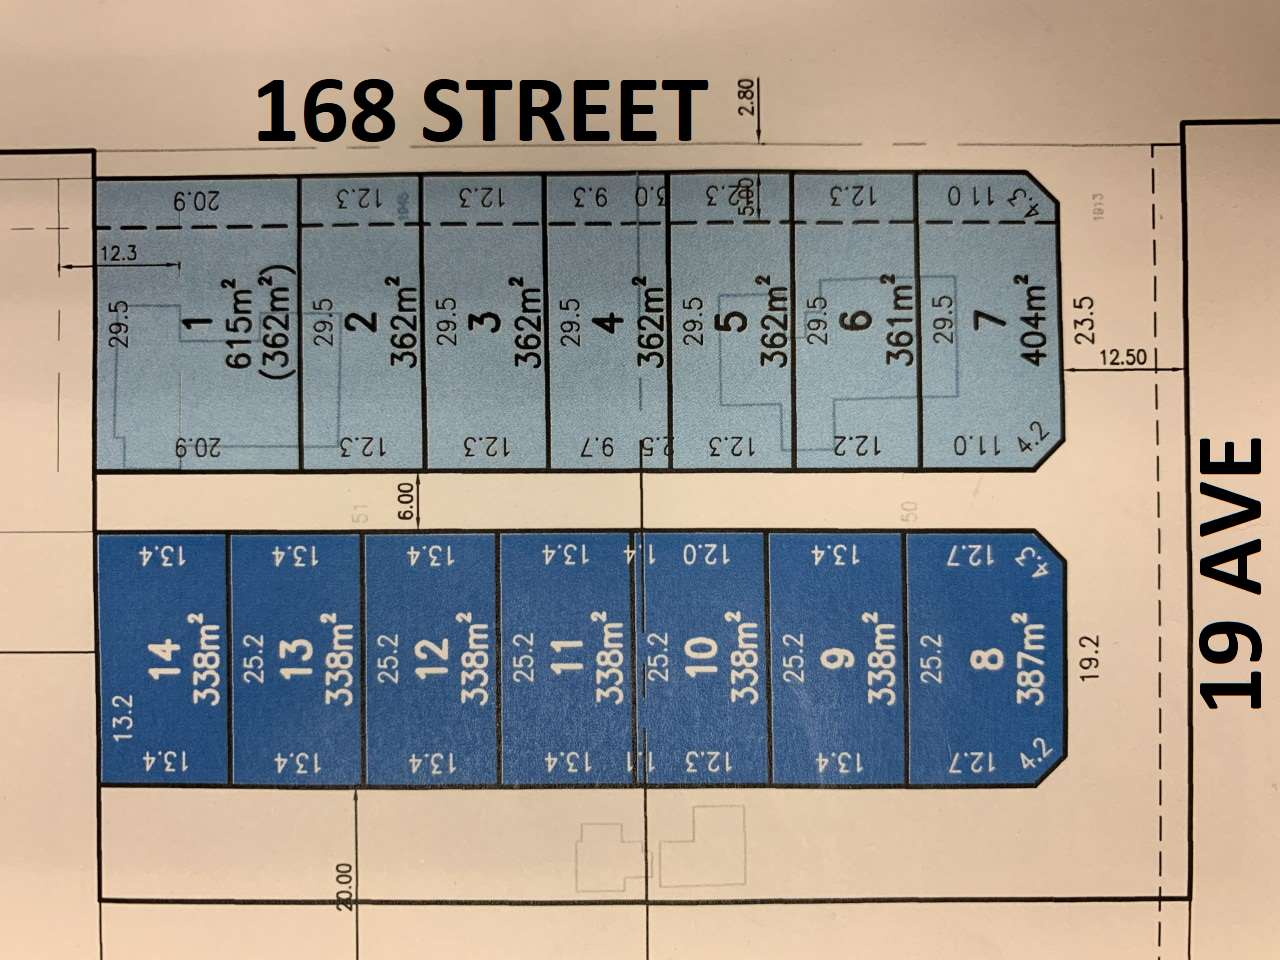 SUNNYSIDE HEIGHTS - An opportunity to purchase an RF-13 (type 1) building lot in the Sunnyside Heights neighbourhood. This P.L.A. approved, 13 lot subdivision offers builders the time to design their home and submit to the City before proceeding with your build. Lots 1-7 are rear load (lane access driveway) with a boulevard set-back off 168th Street and are walking distance to a new elementary school and near-by access to shopping, restaurants and recreation. Call for more information.